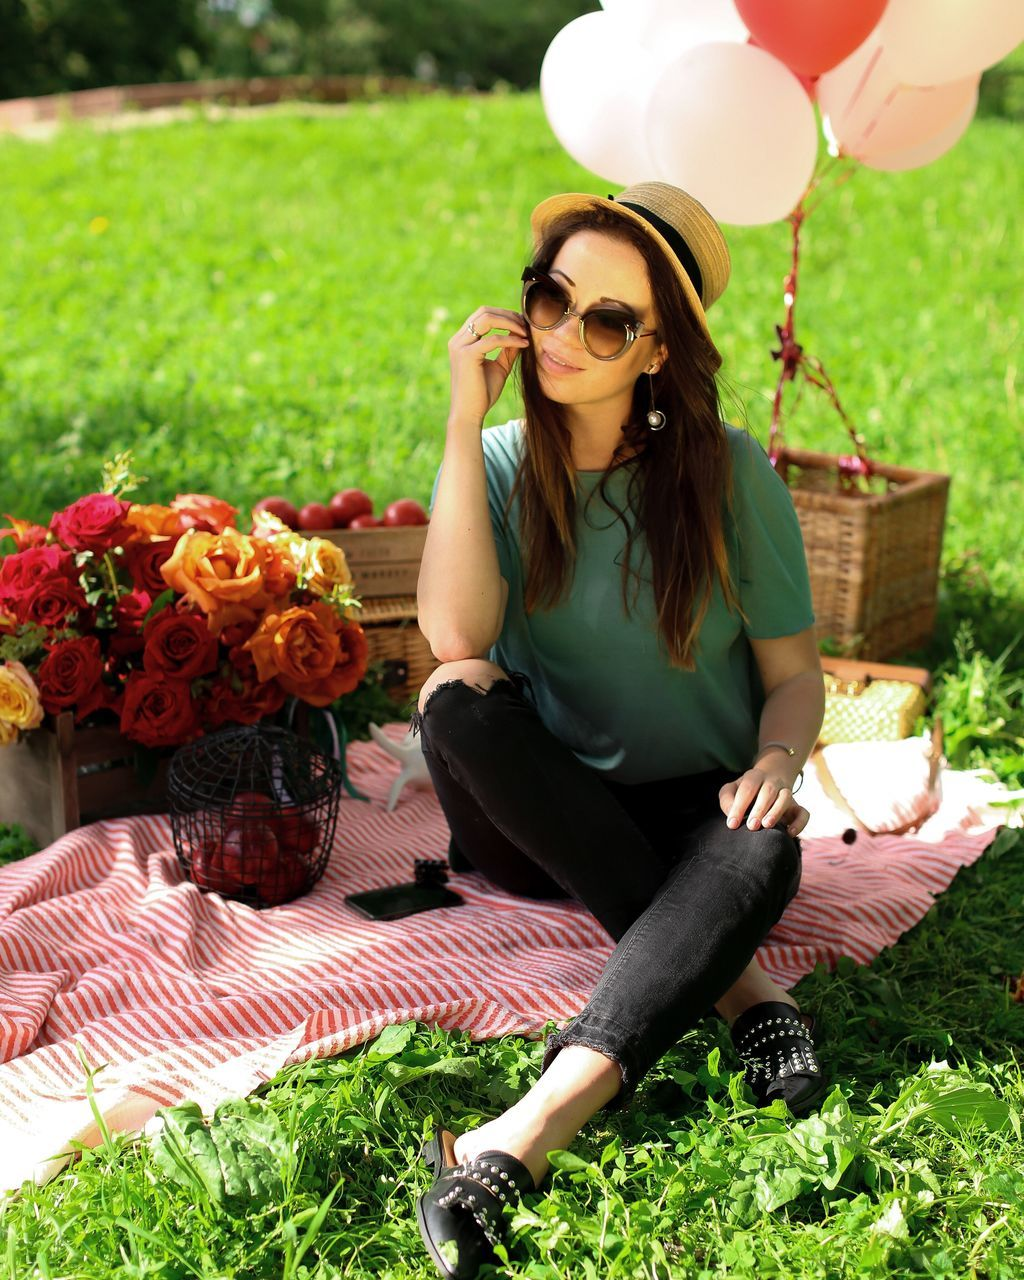 grass, flower, one person, full length, real people, front view, lawn, sunglasses, young women, outdoors, casual clothing, young adult, beautiful woman, leisure activity, day, lifestyles, park - man made space, sitting, smiling, nature, sun hat, plant, happiness, beauty in nature, portrait, freshness